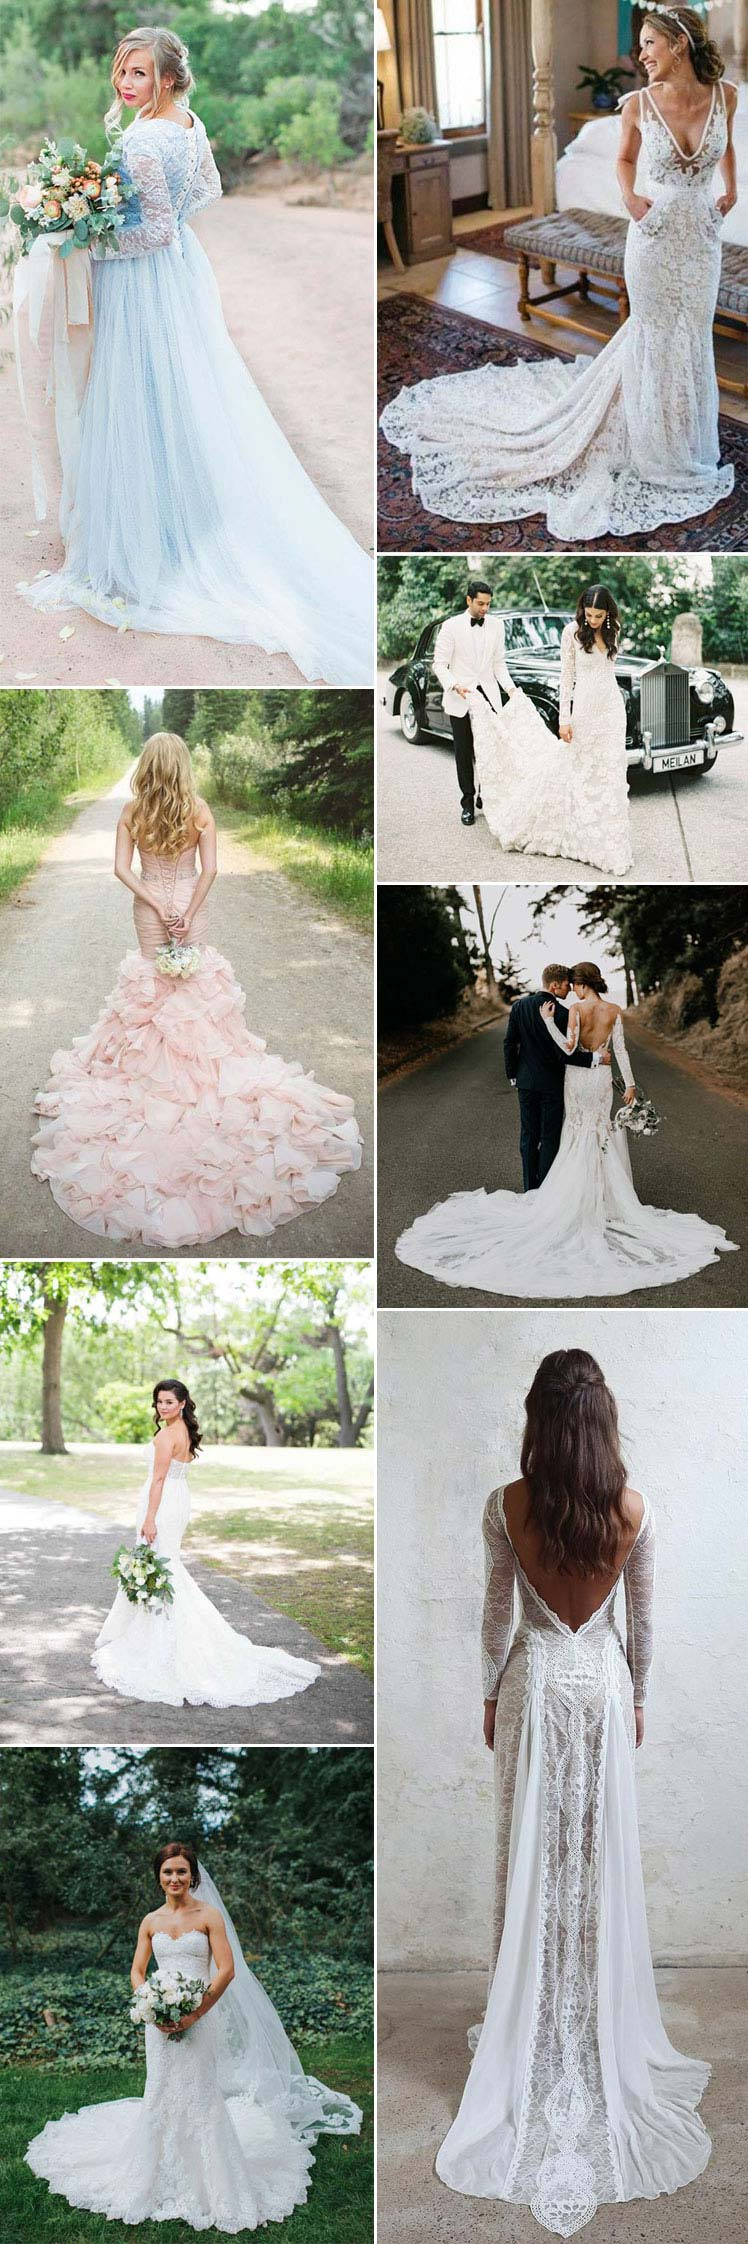 Wedding dresses with trains for every bridal style